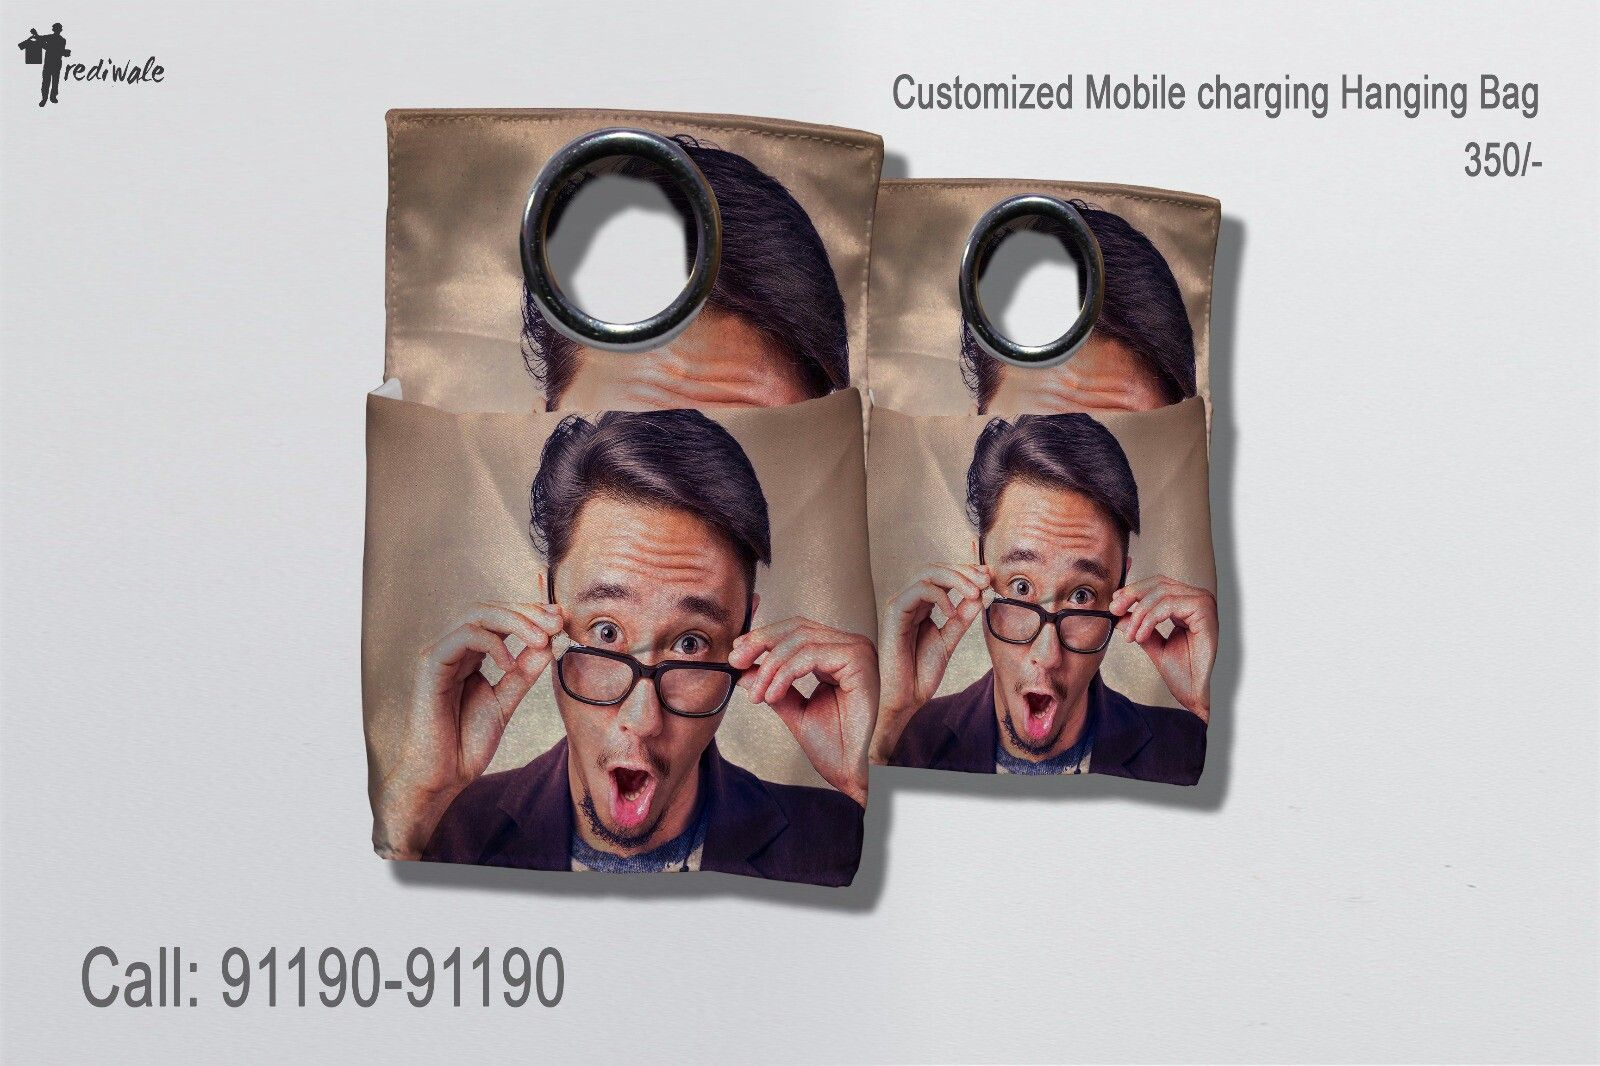 Customized Product Call Whatsapp Message For Order 91190